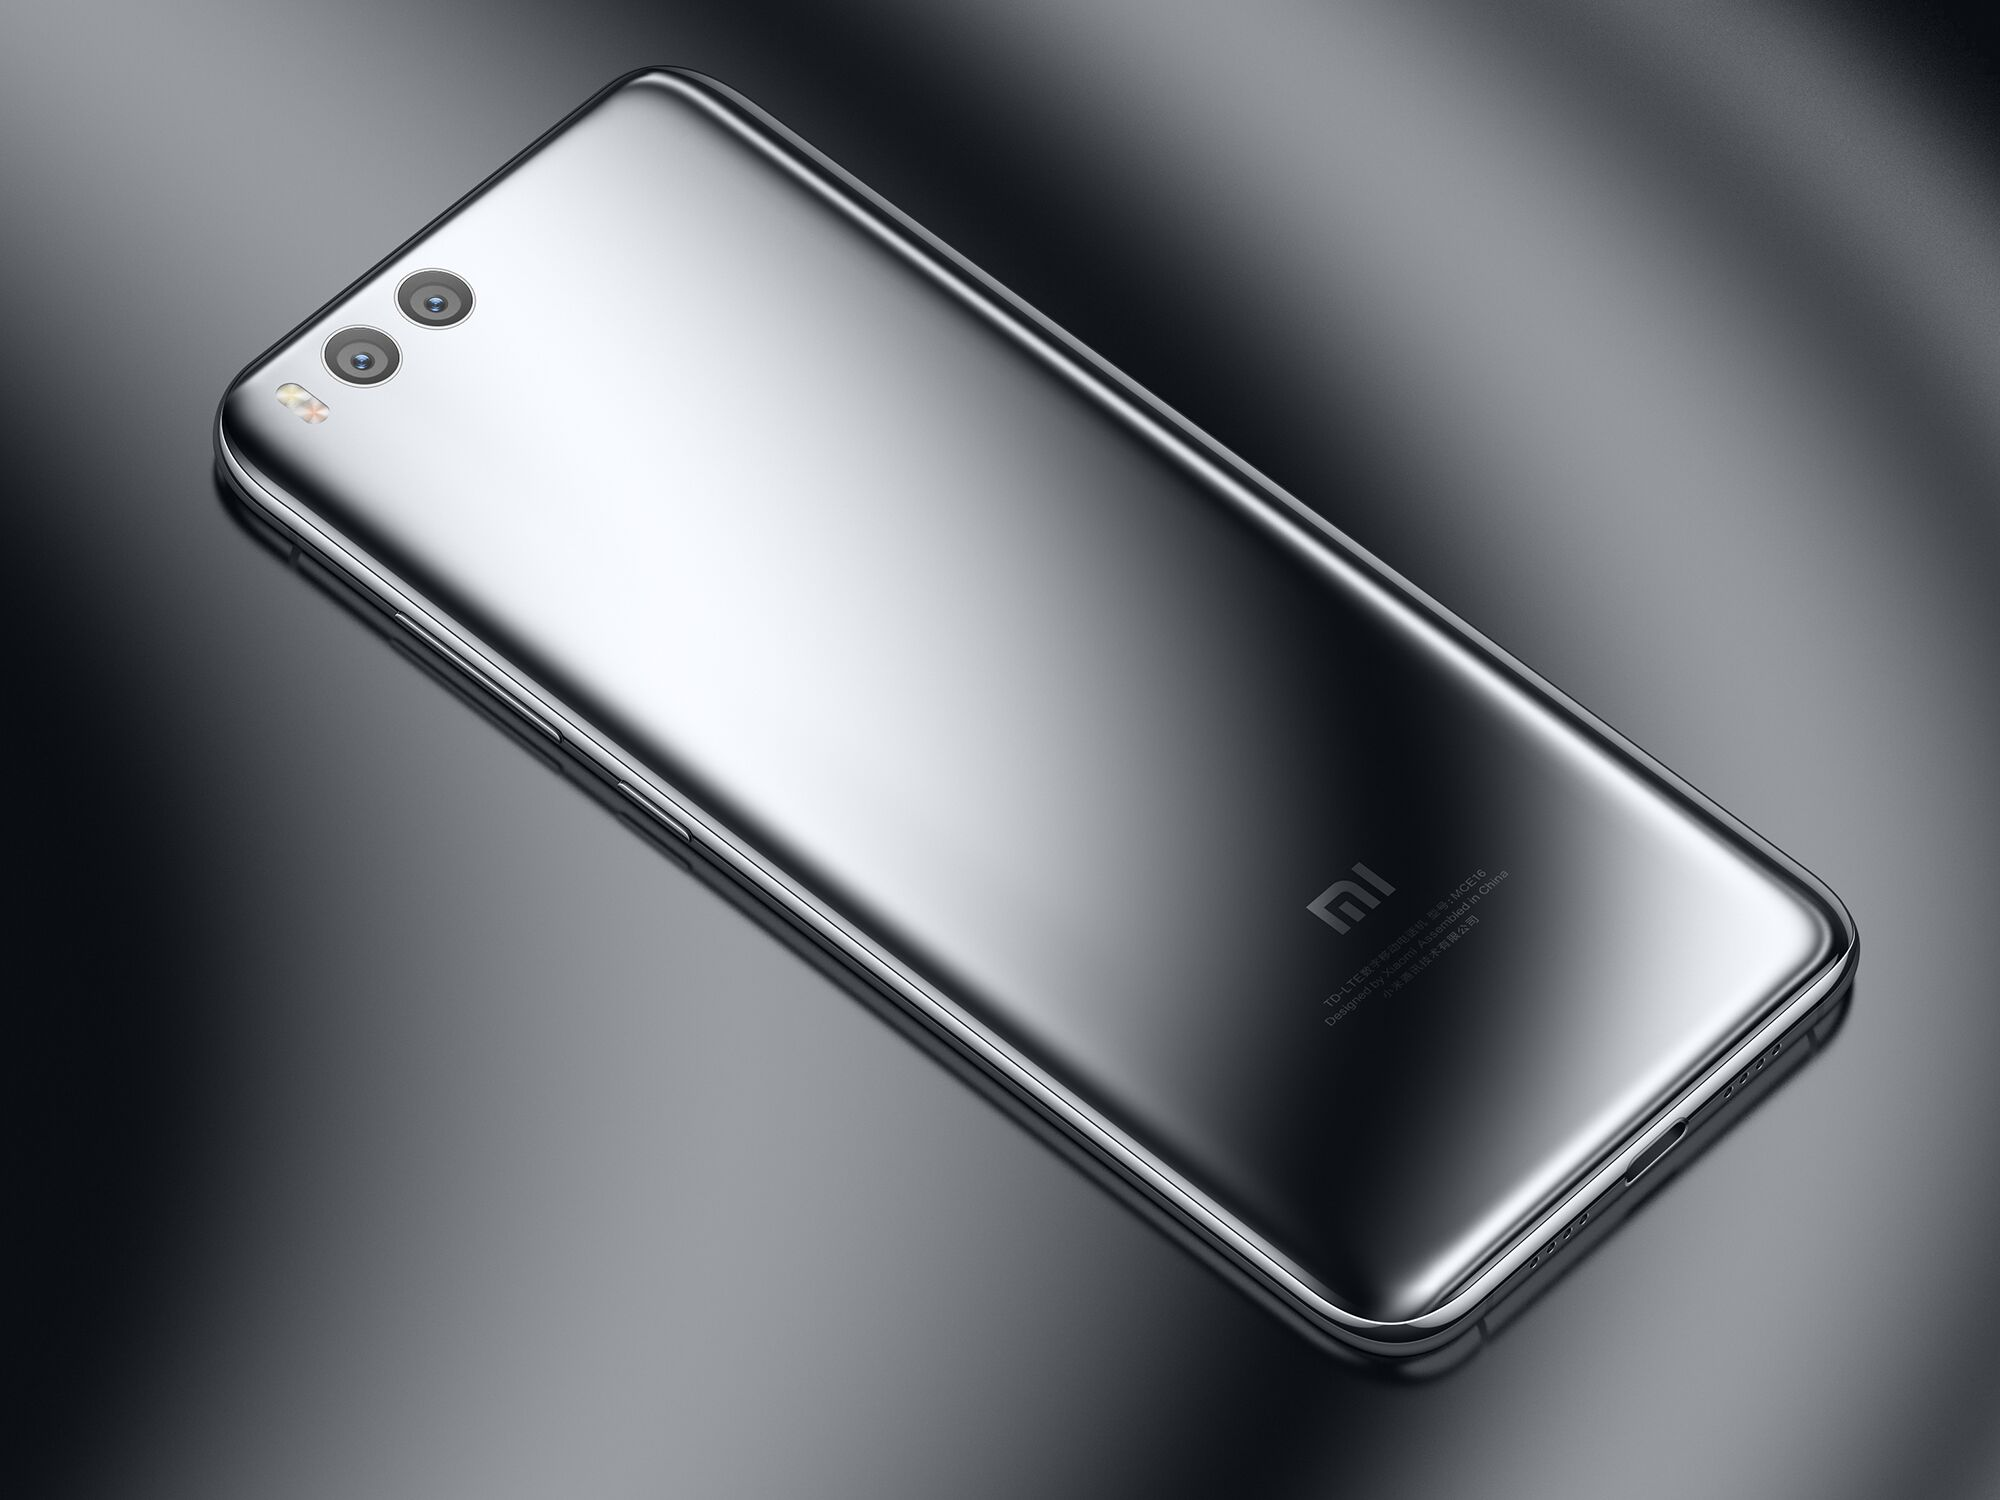 Xiaomi will launch the mi 6 in white tomorrow stopboris Image collections